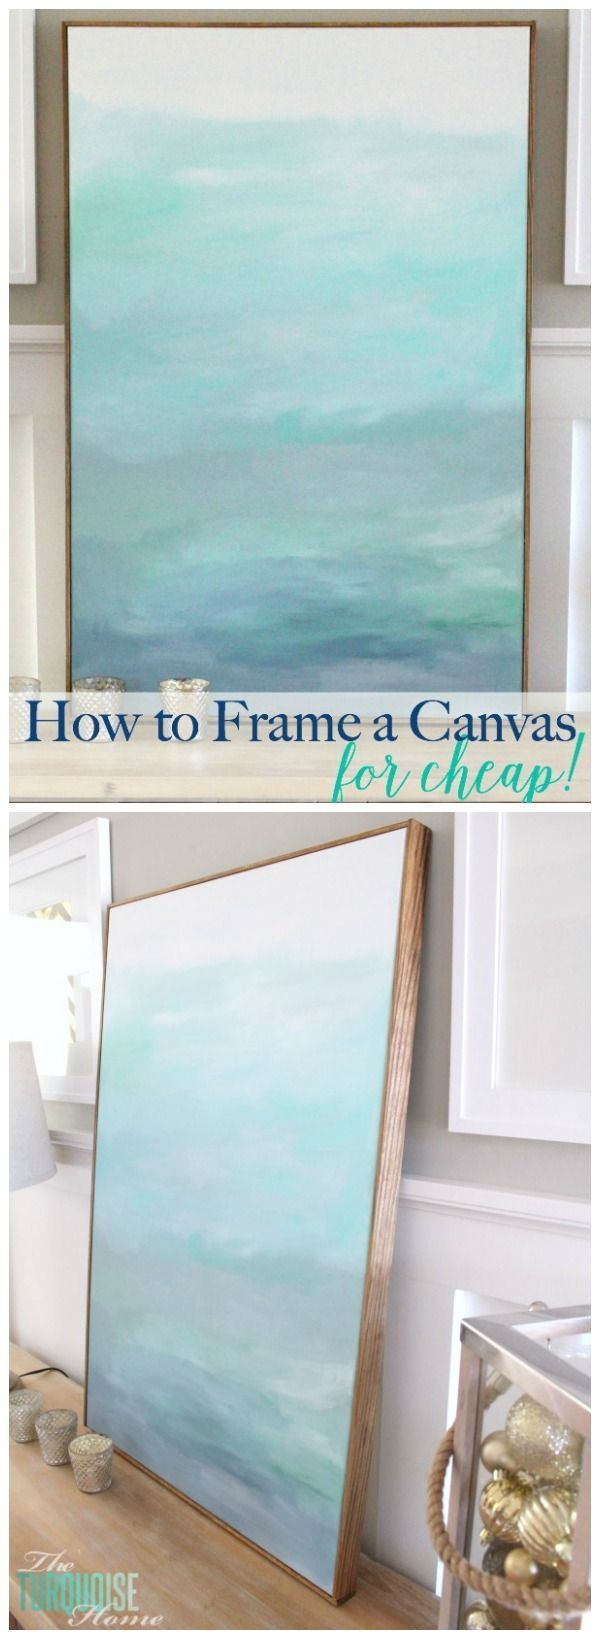 No WAY! This is such an easy (and cheap!) way to frame out a canvas.